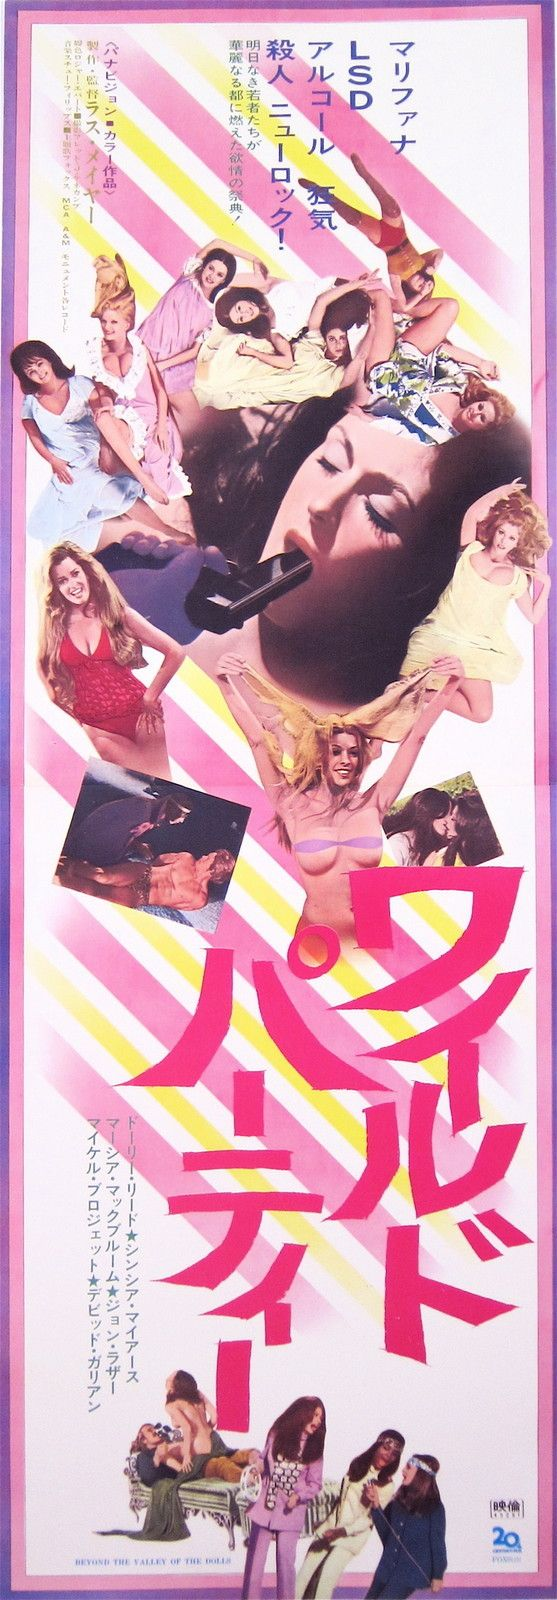 Beyond the Valley of the Dolls, Japanese movie poster.